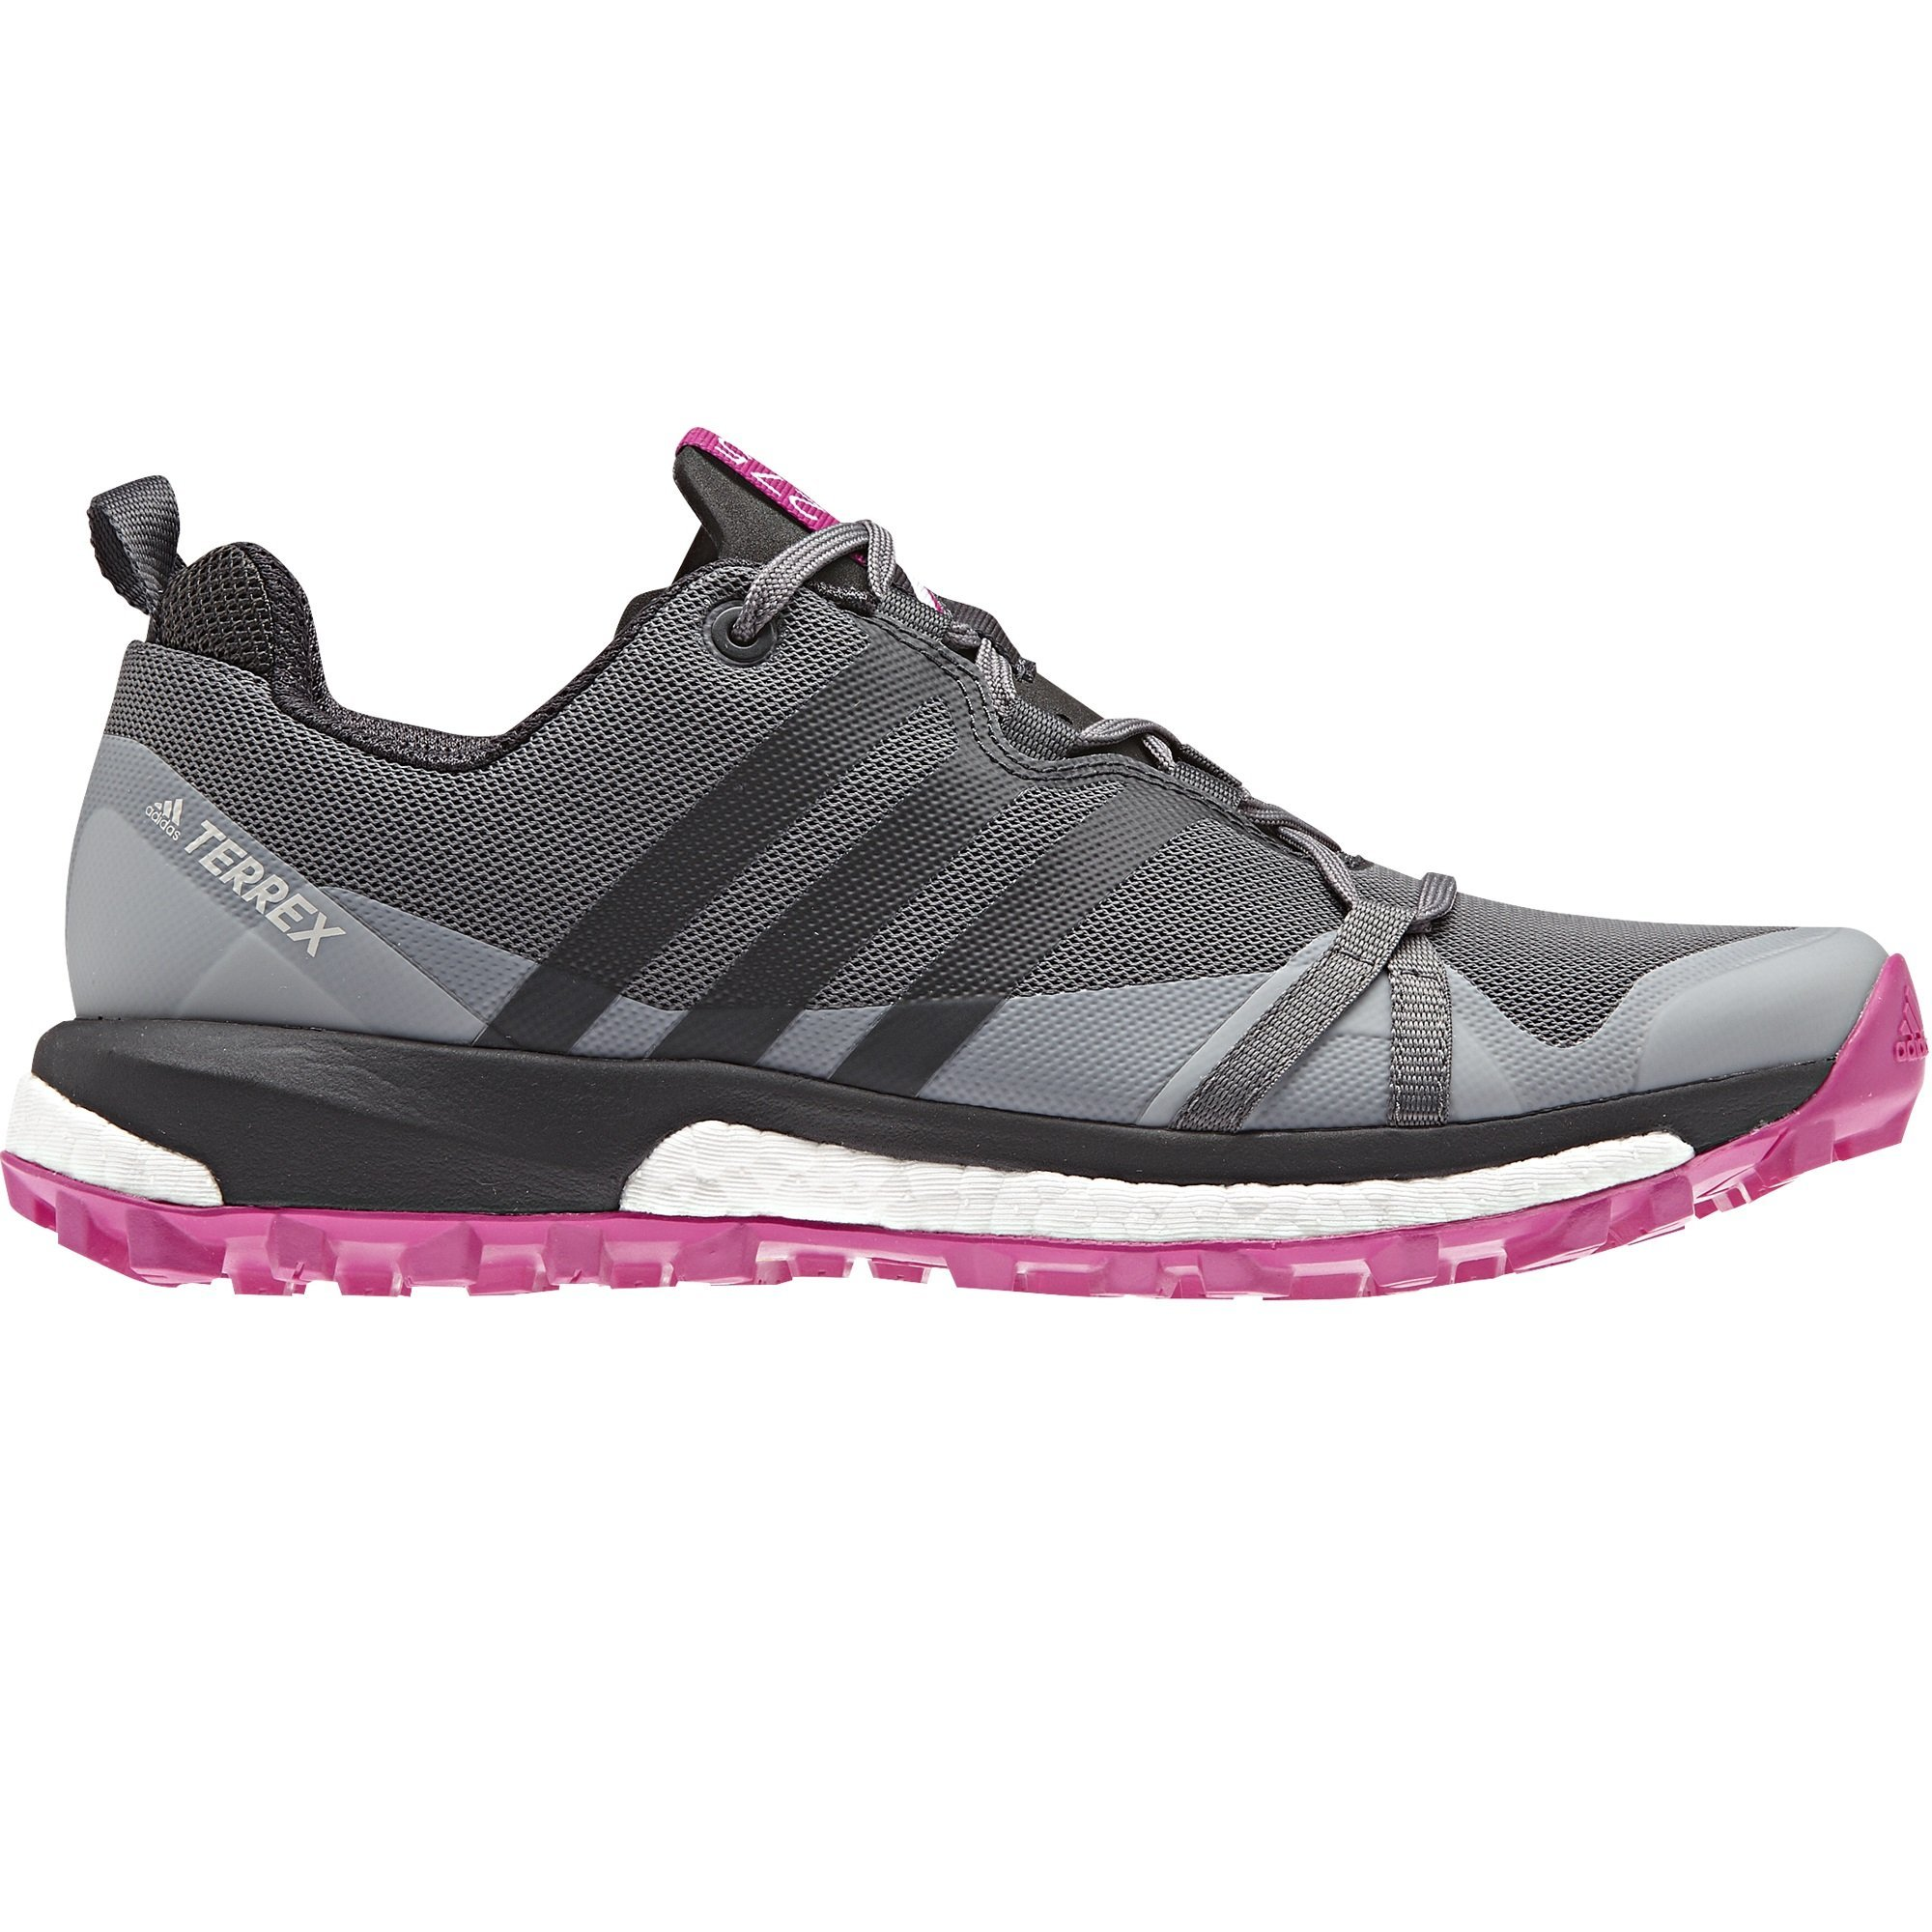 Adidas Size 5 Womens Terrex Agravic in Grey & Pink